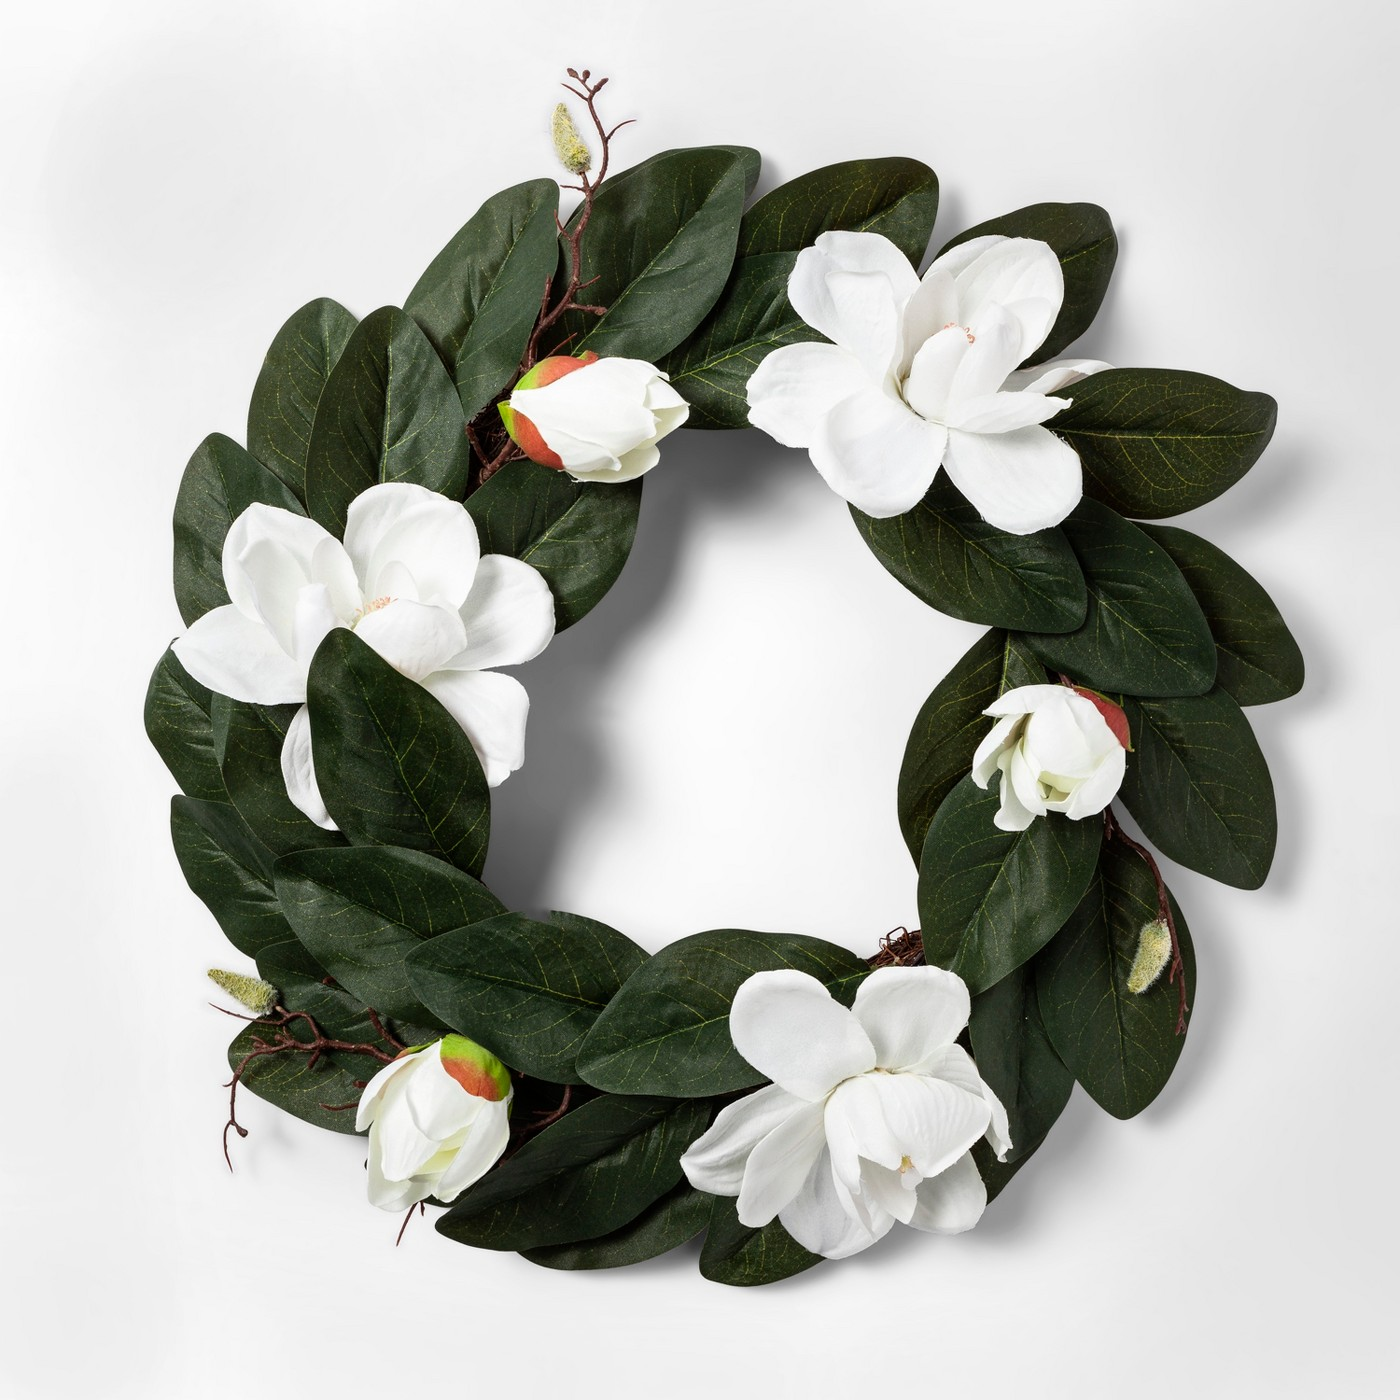 Decorative Artificial Wreath - Threshold™ - image 1 of 1